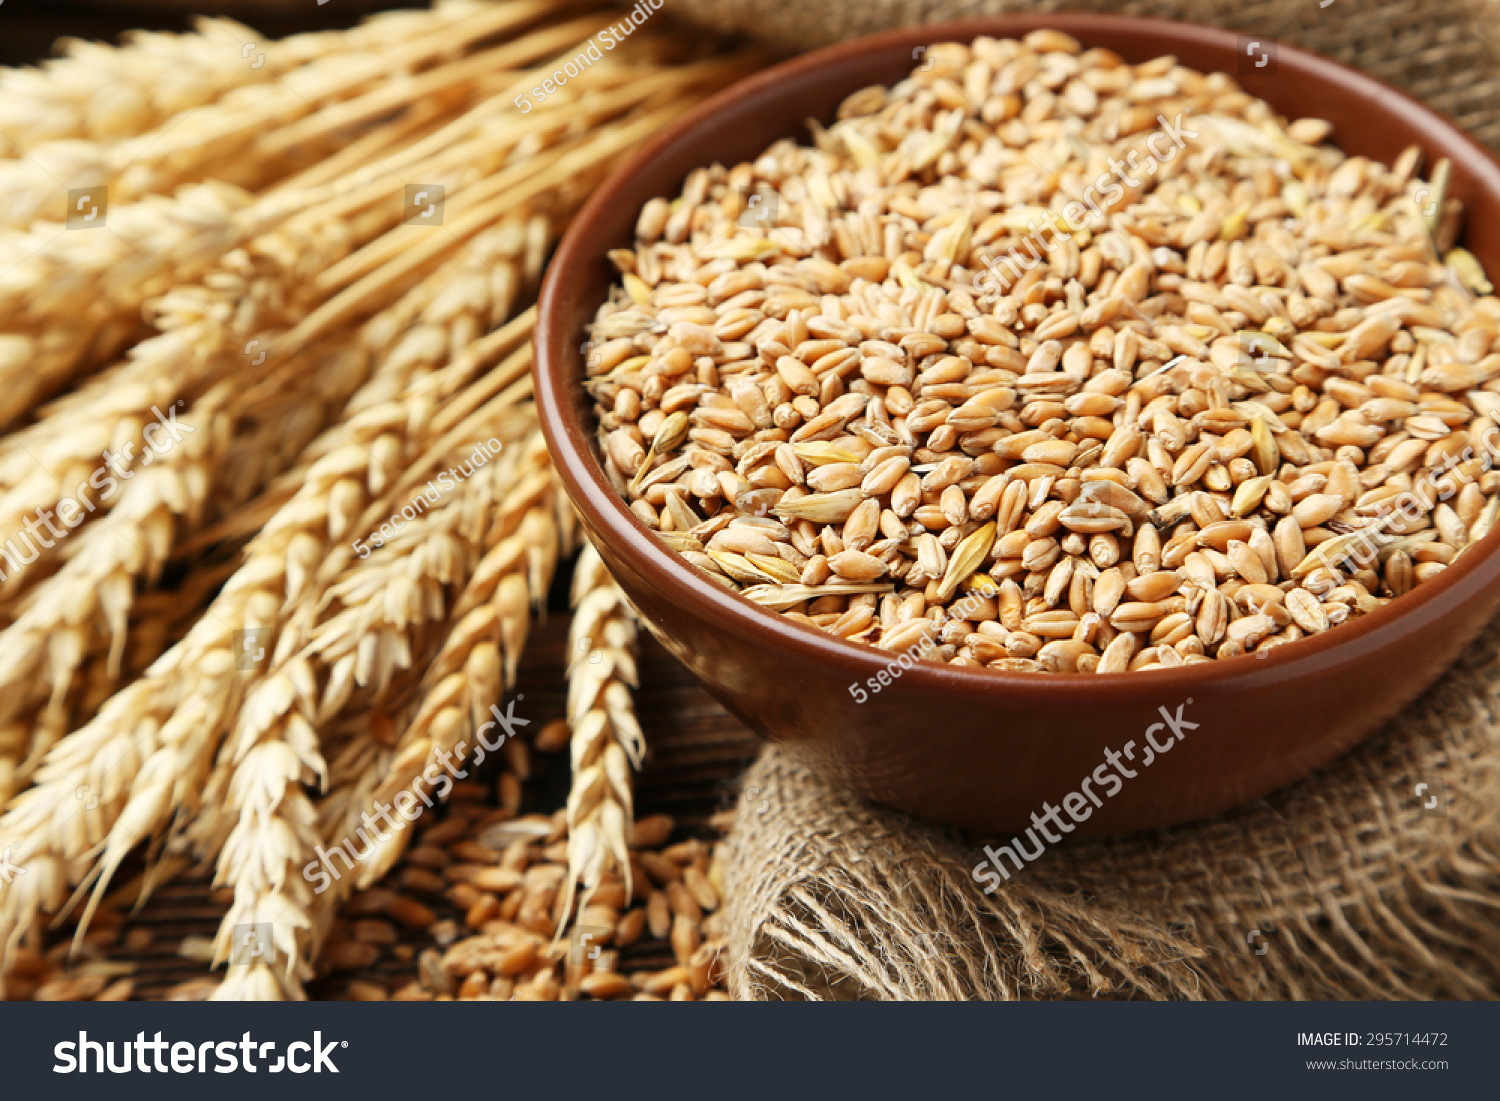 Ears of wheat and bowl of wheat grains on brown wooden background #295714472